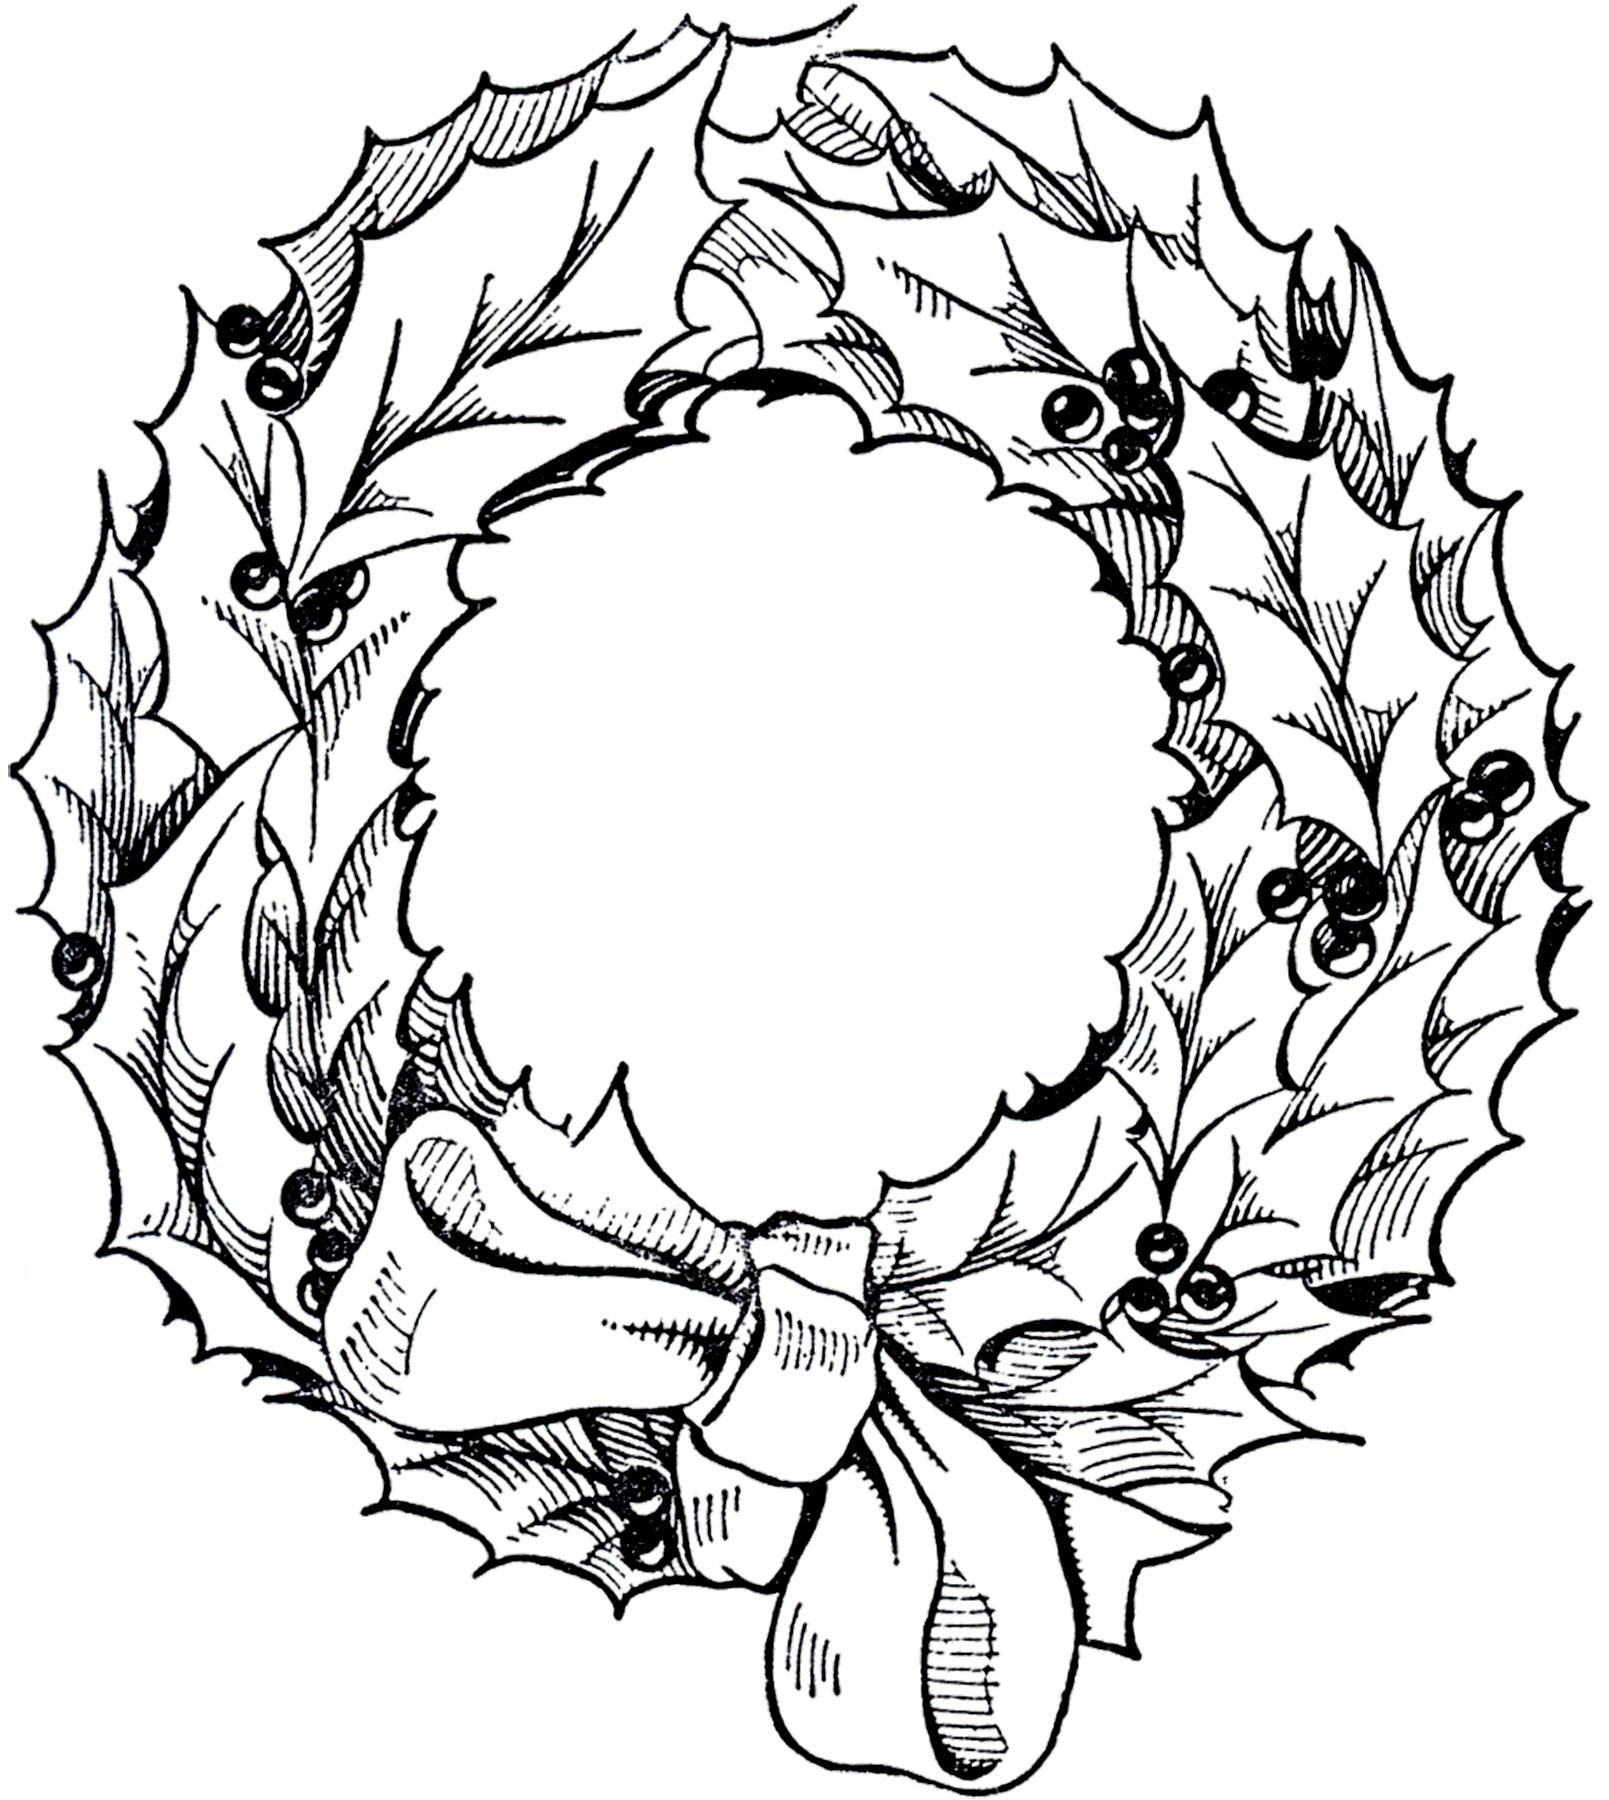 Christmas Wreath Clipart Black And White Group (+), HD Clipart.